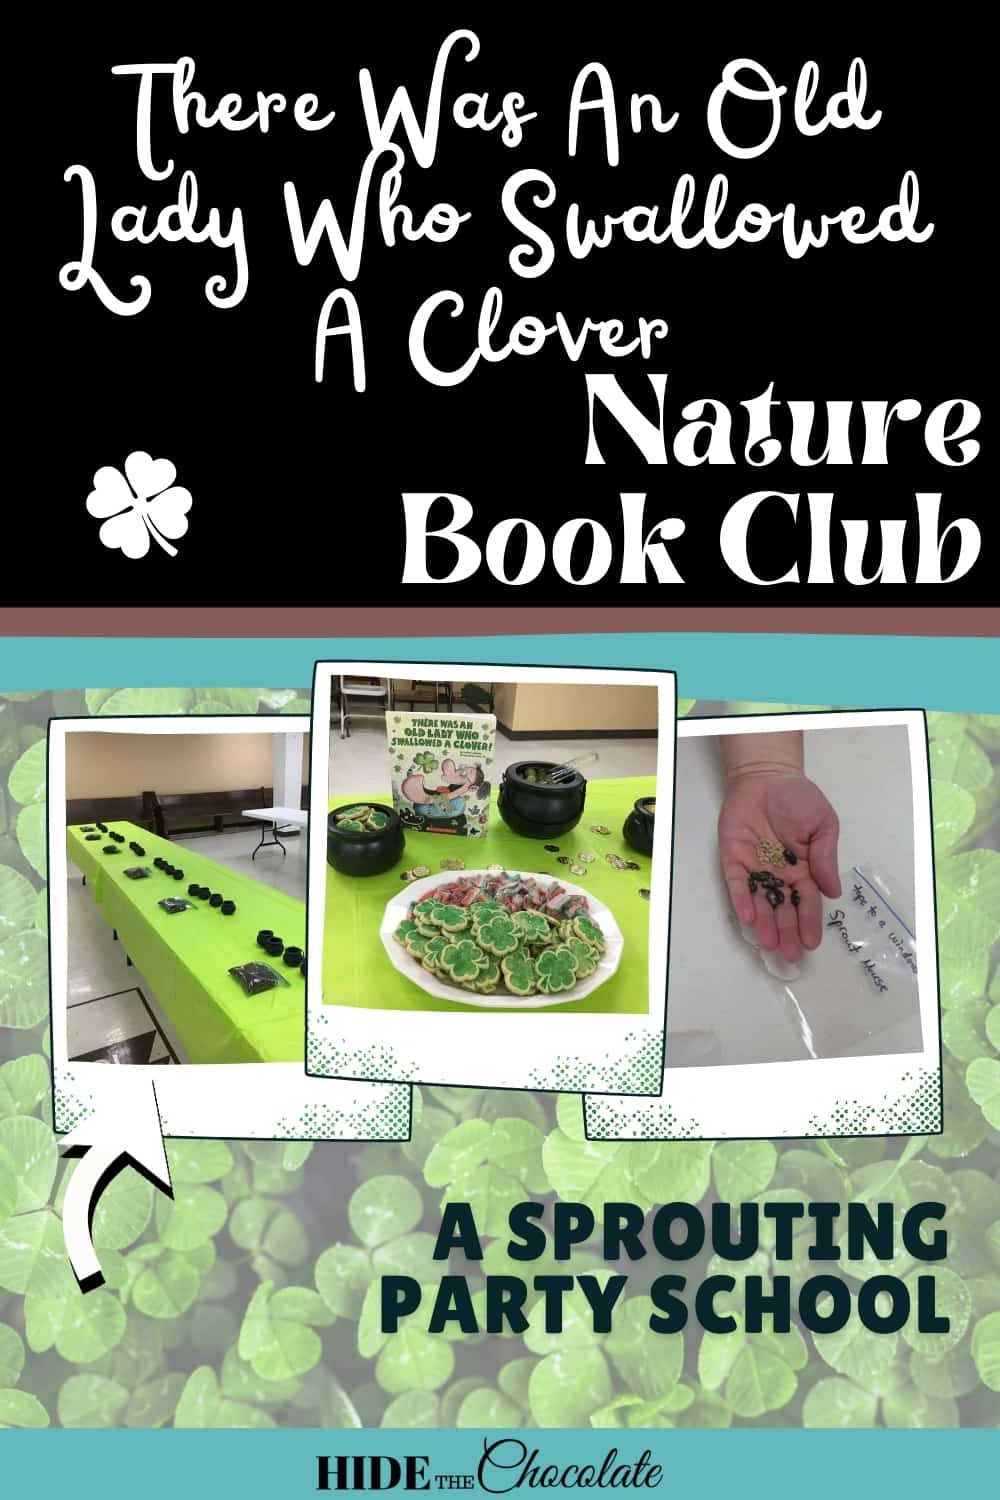 There Was An Old Lady Who Swallowed A Clover Nature Book Club ~ A Sprouting Party School